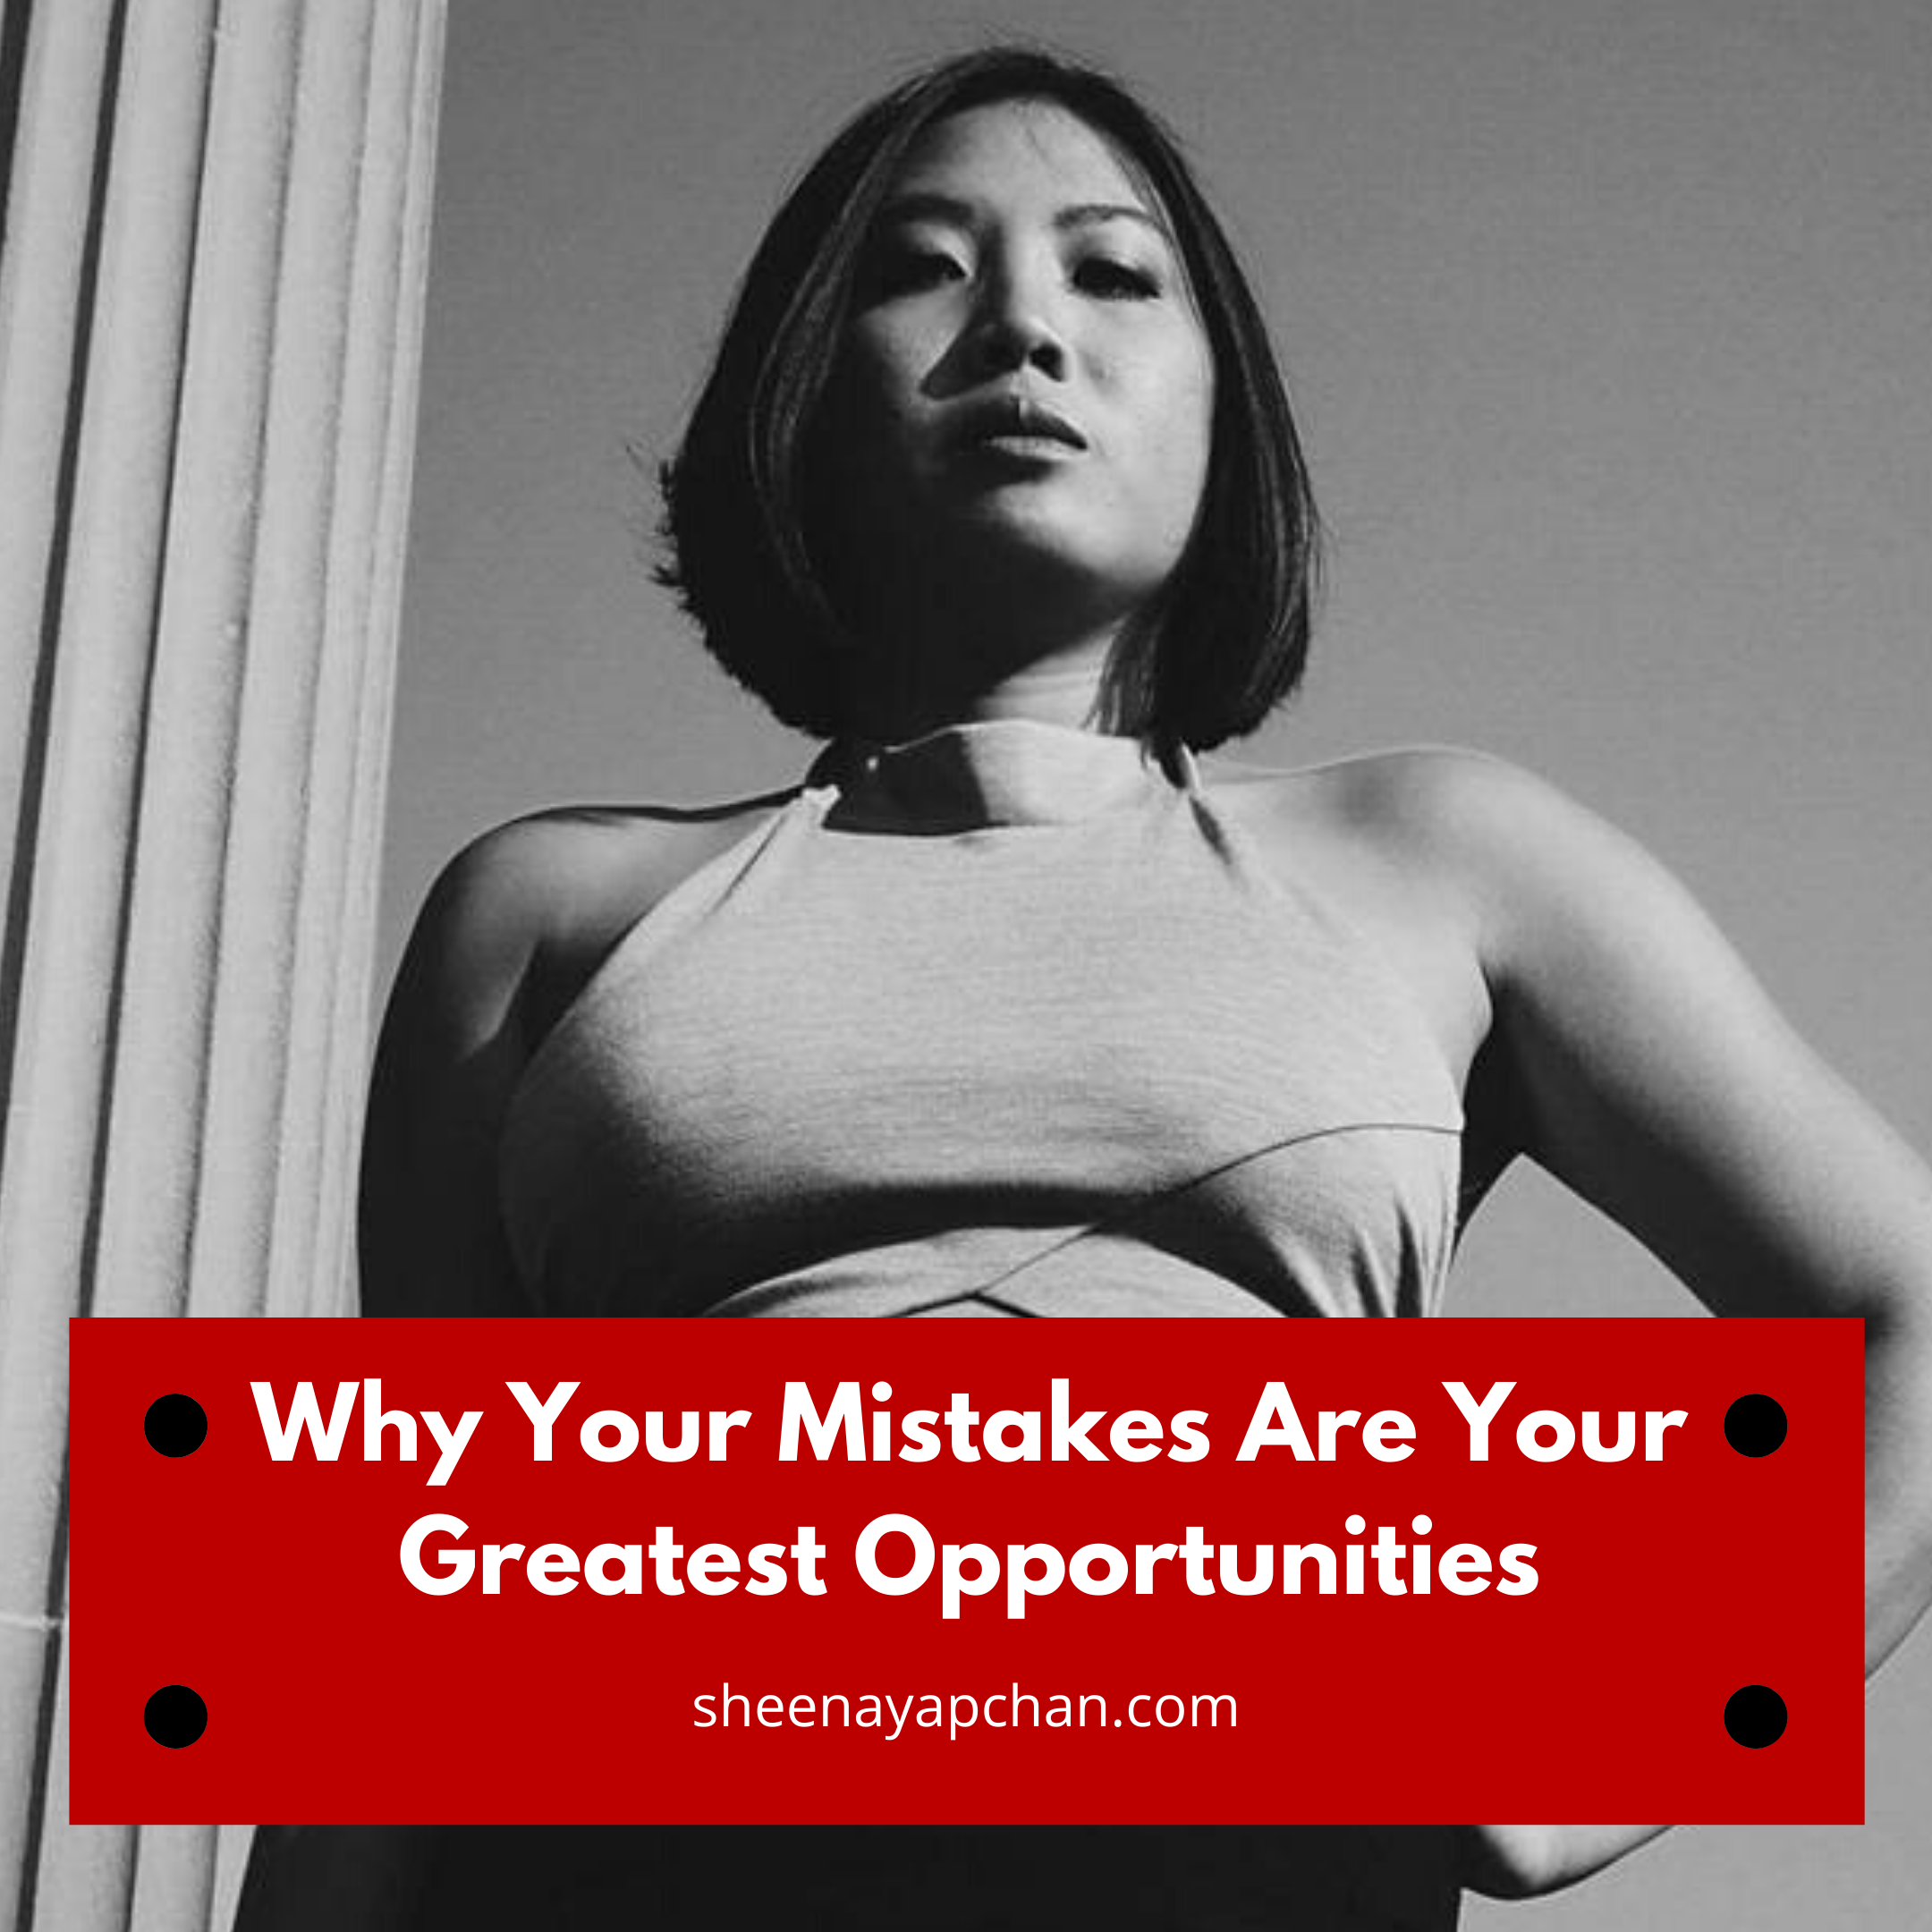 Why Your Mistakes Are Your Greatest Opportunities